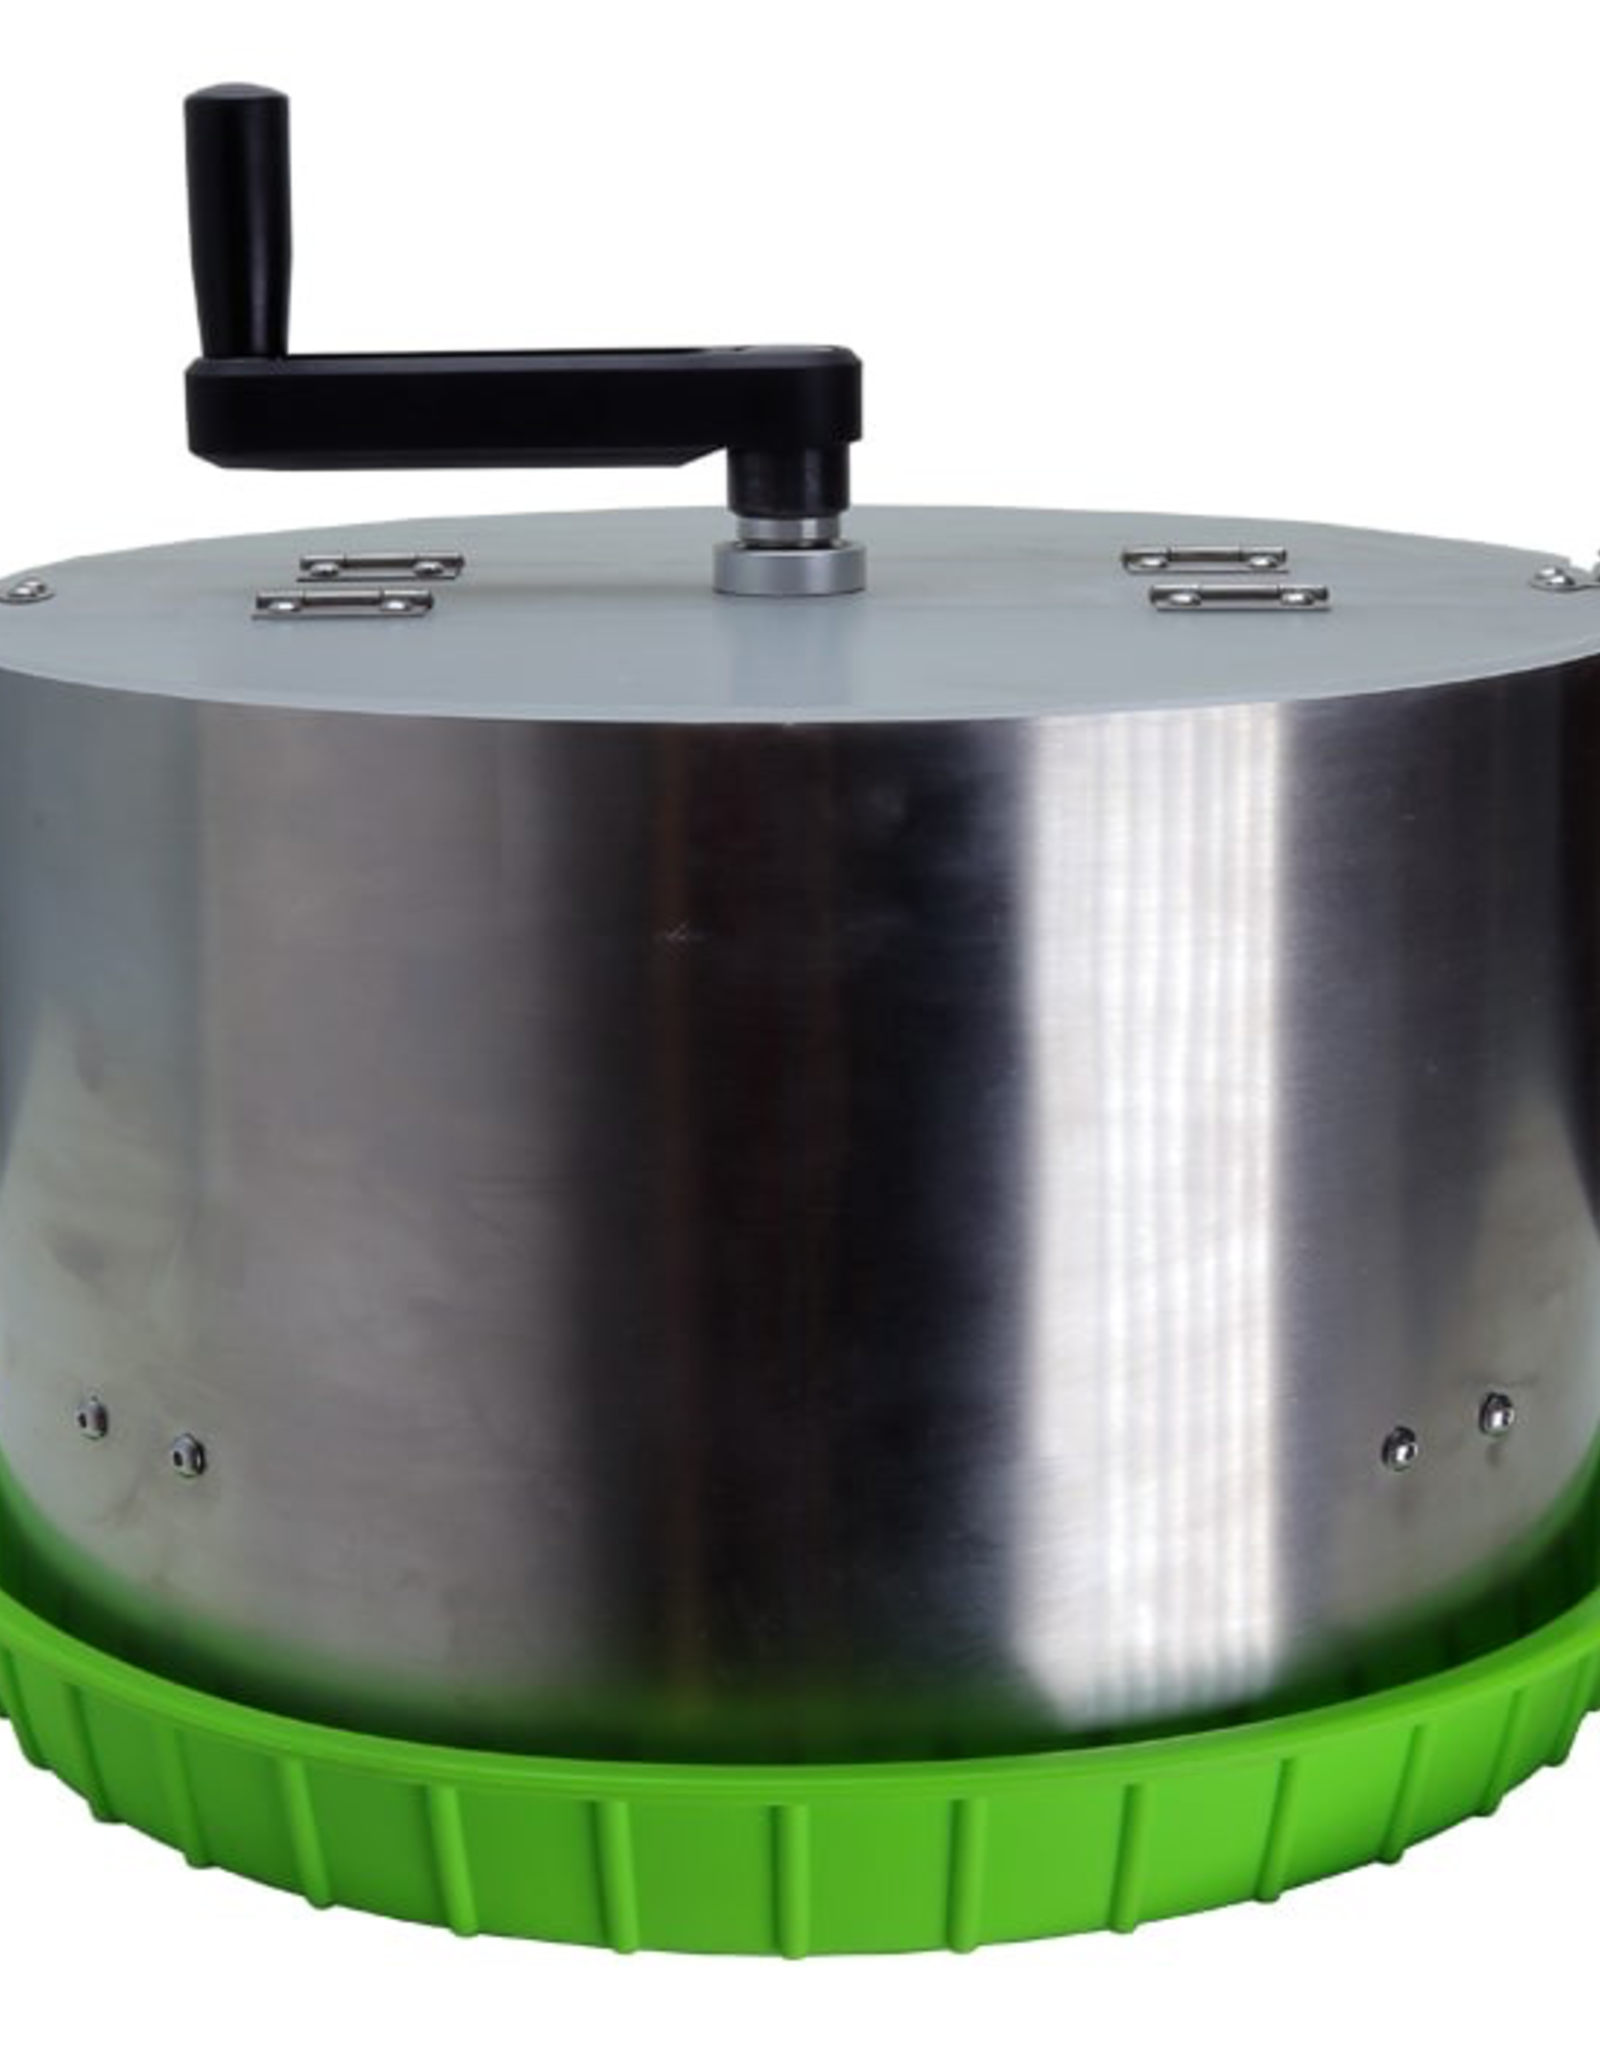 "DL WHOLESALE 16"" Crankit Dry & Wet Precision Bowl Trimmer<br /> 16-inch commercial grade precision trimmer machine featuring a stainless-steel cylinder body with CNC center grate 5/16'' slot and premium solid metal gearbox. Compatible with both wet and dry material. Built w"